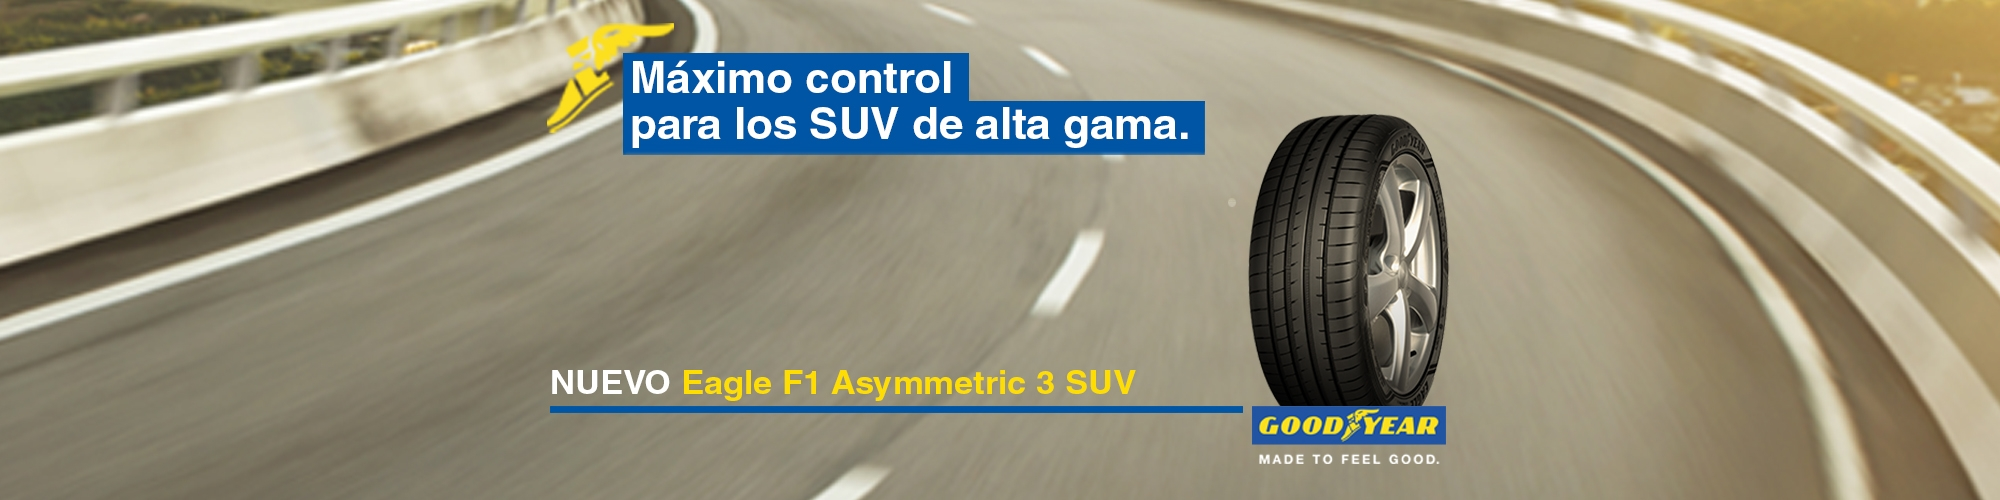 Eagle F1 Asymetric 3 SUV - Goodyear